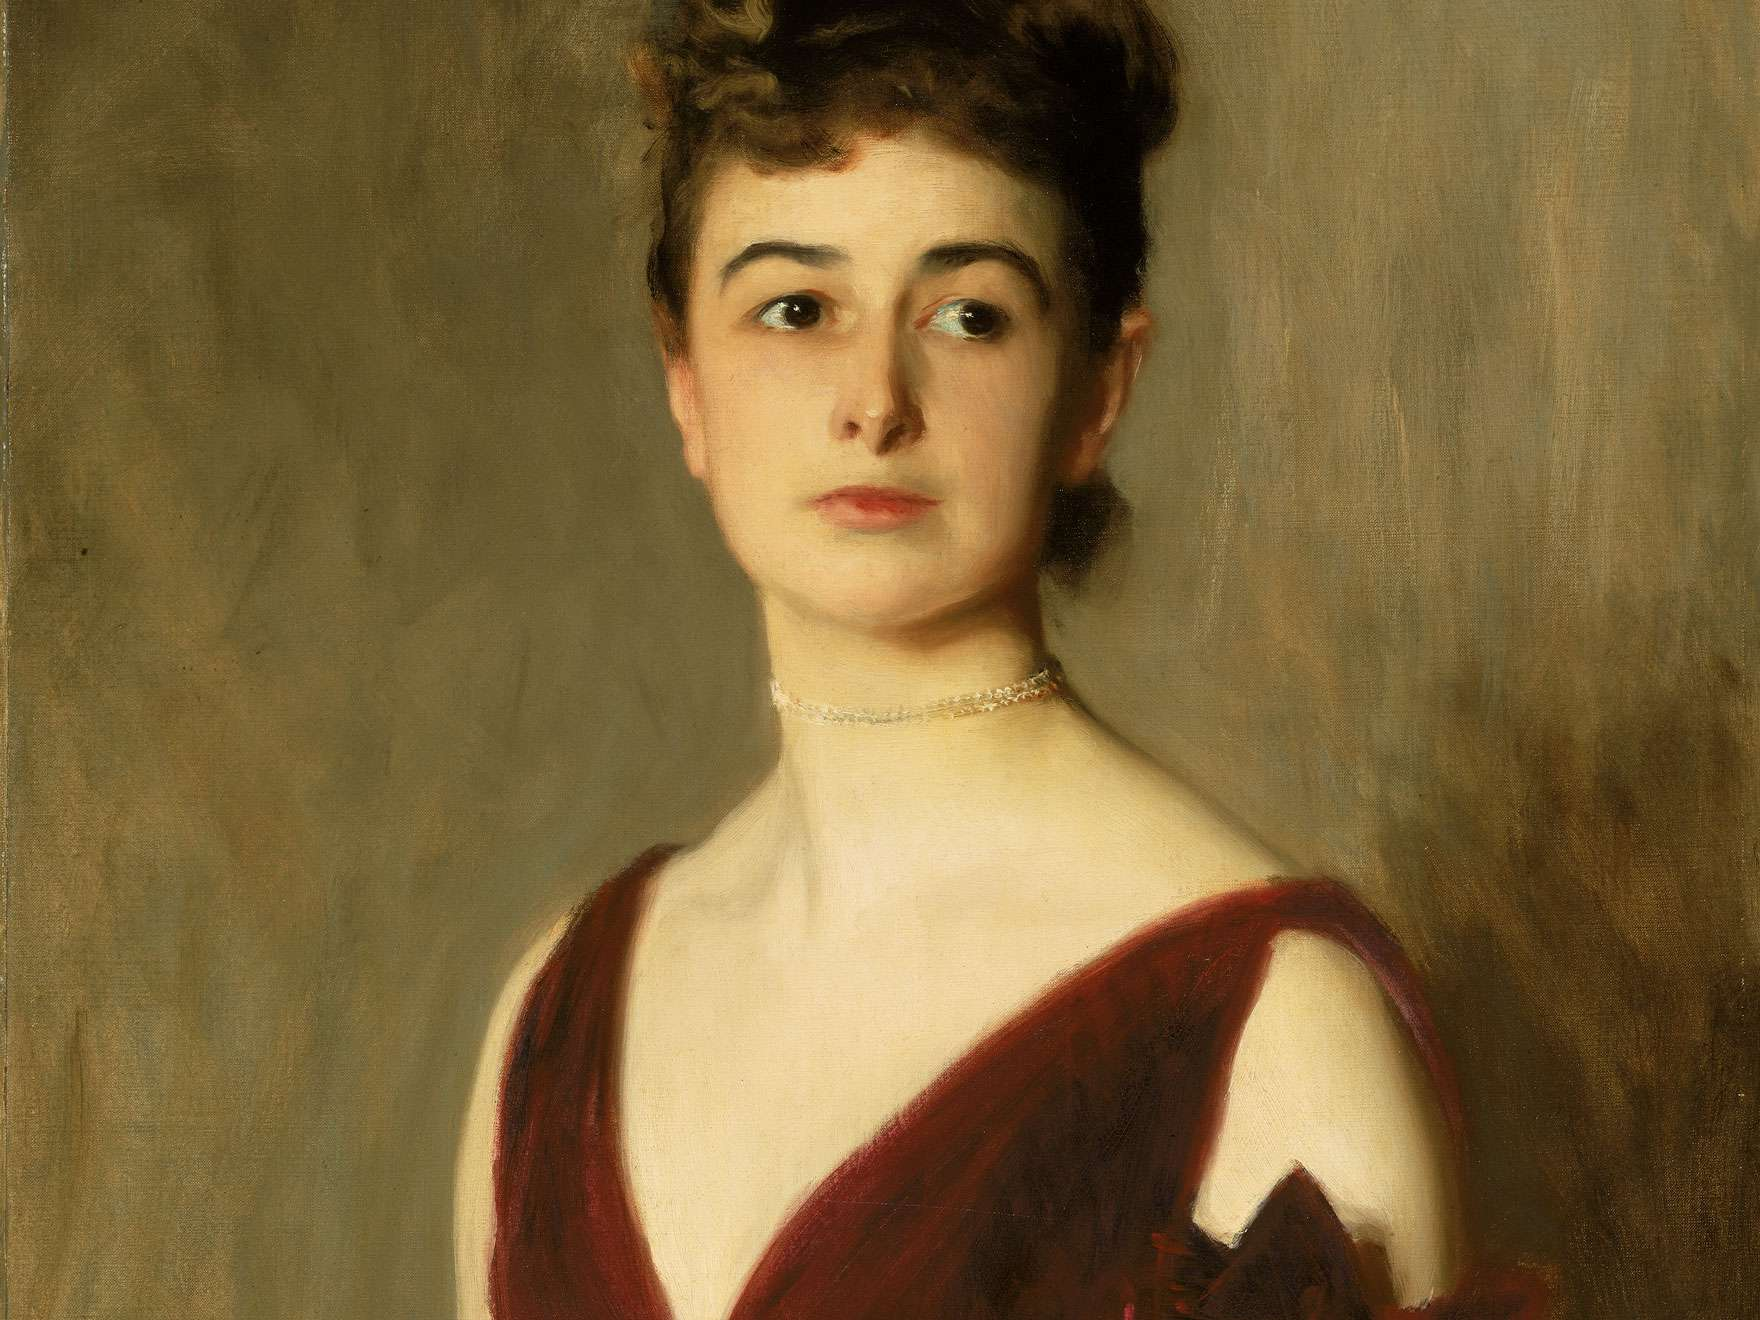 Detail of John Singer Sargent's painting, Mrs. Charles E. Inches (Louise Pomeroy)